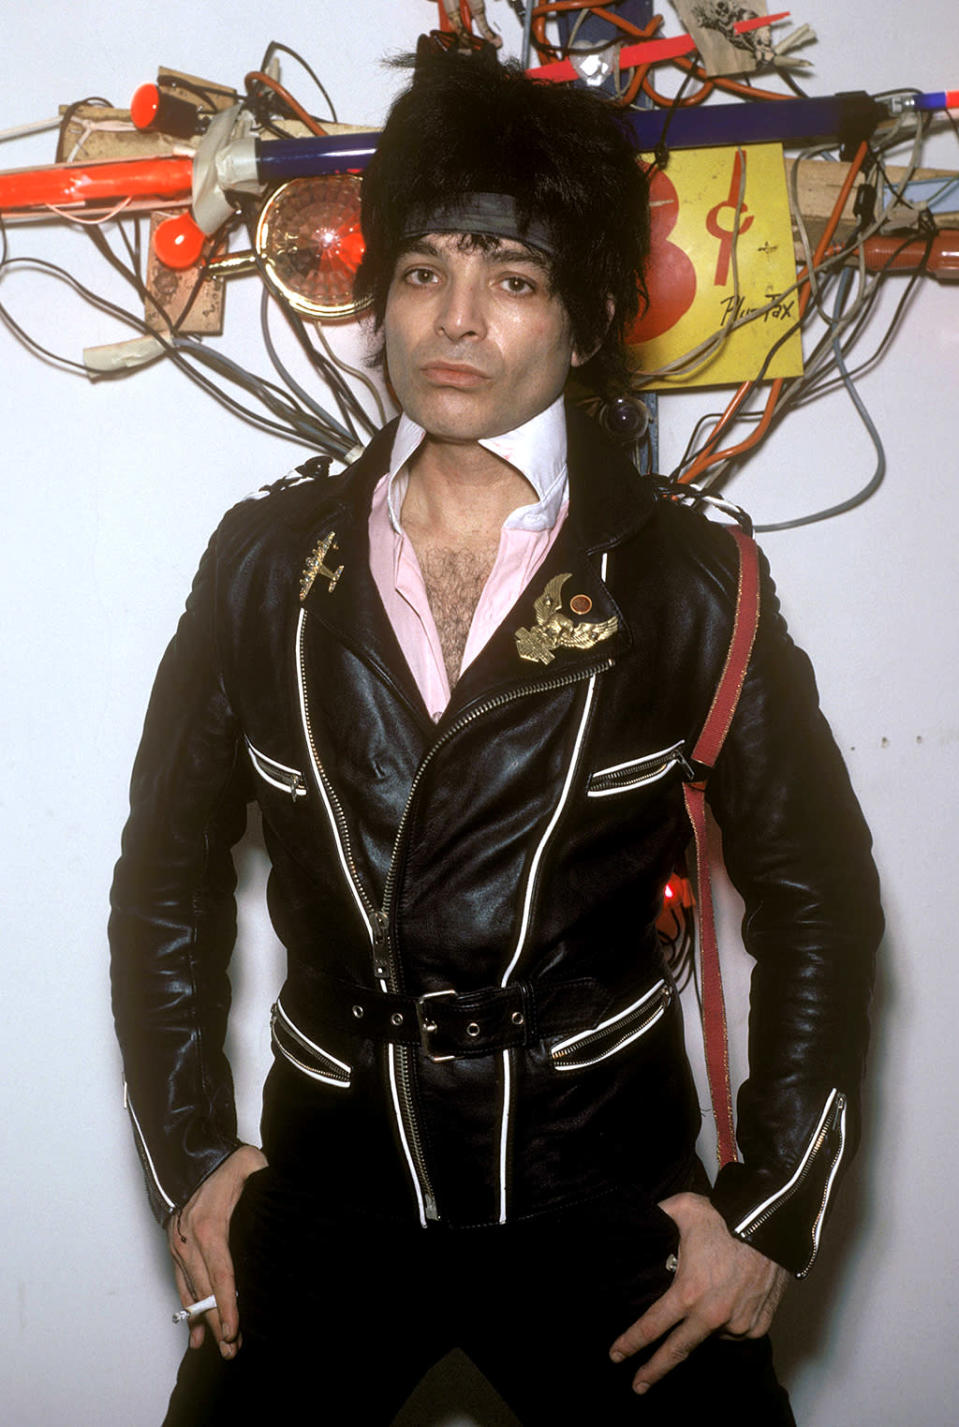 Alan Vega was the co-founder of the incredibly influential NYC synth-punk duo Suicide. He died in his sleep at age 78 on July 16, just a couple months before Suicide were set to headline the Desert Daze festival in California. (Photo: Getty)